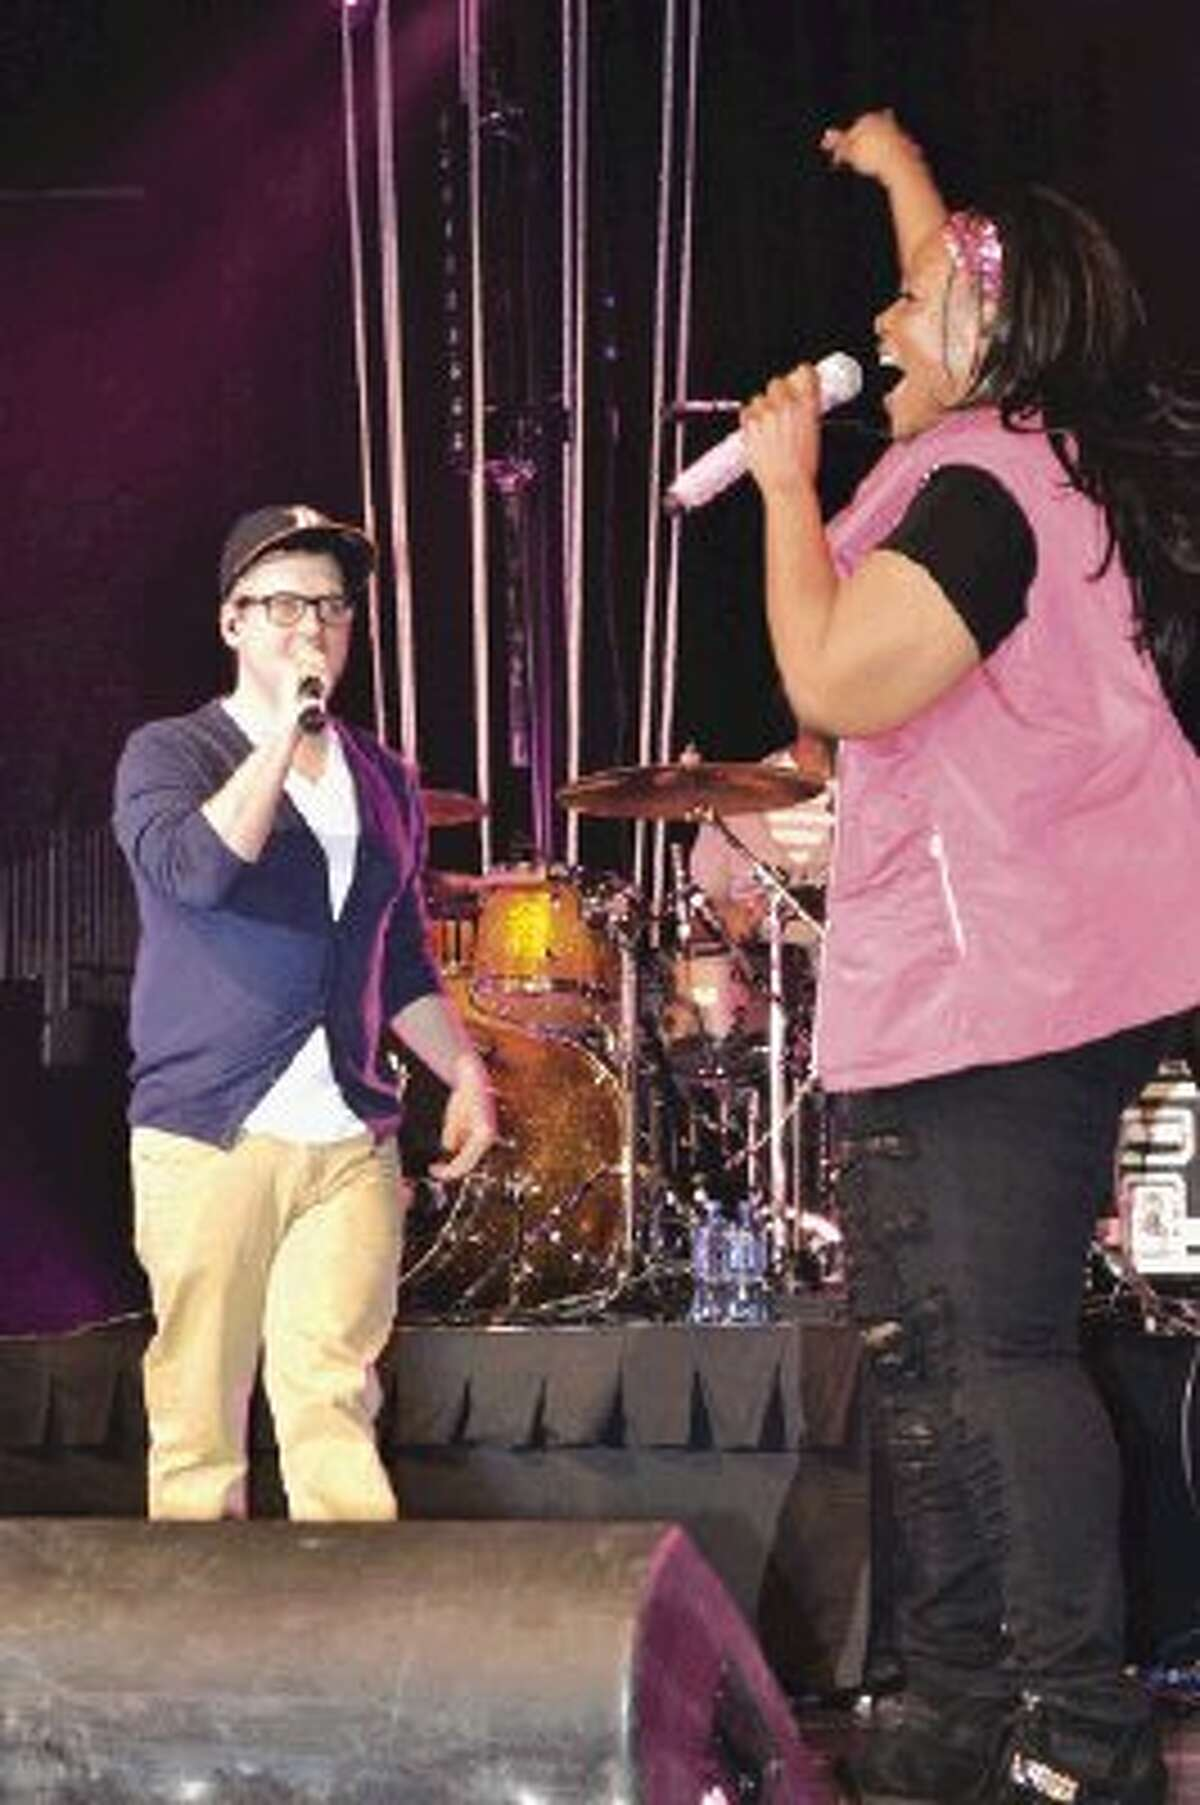 Mandisa introduces James Curlin, a Montgomery resident, during Saturday's concert at the Berry Center. Curlin, who won a KSBJ contest to sing with Mandisa, is the worship and outreach pastor at Fellowship of Montgomery.